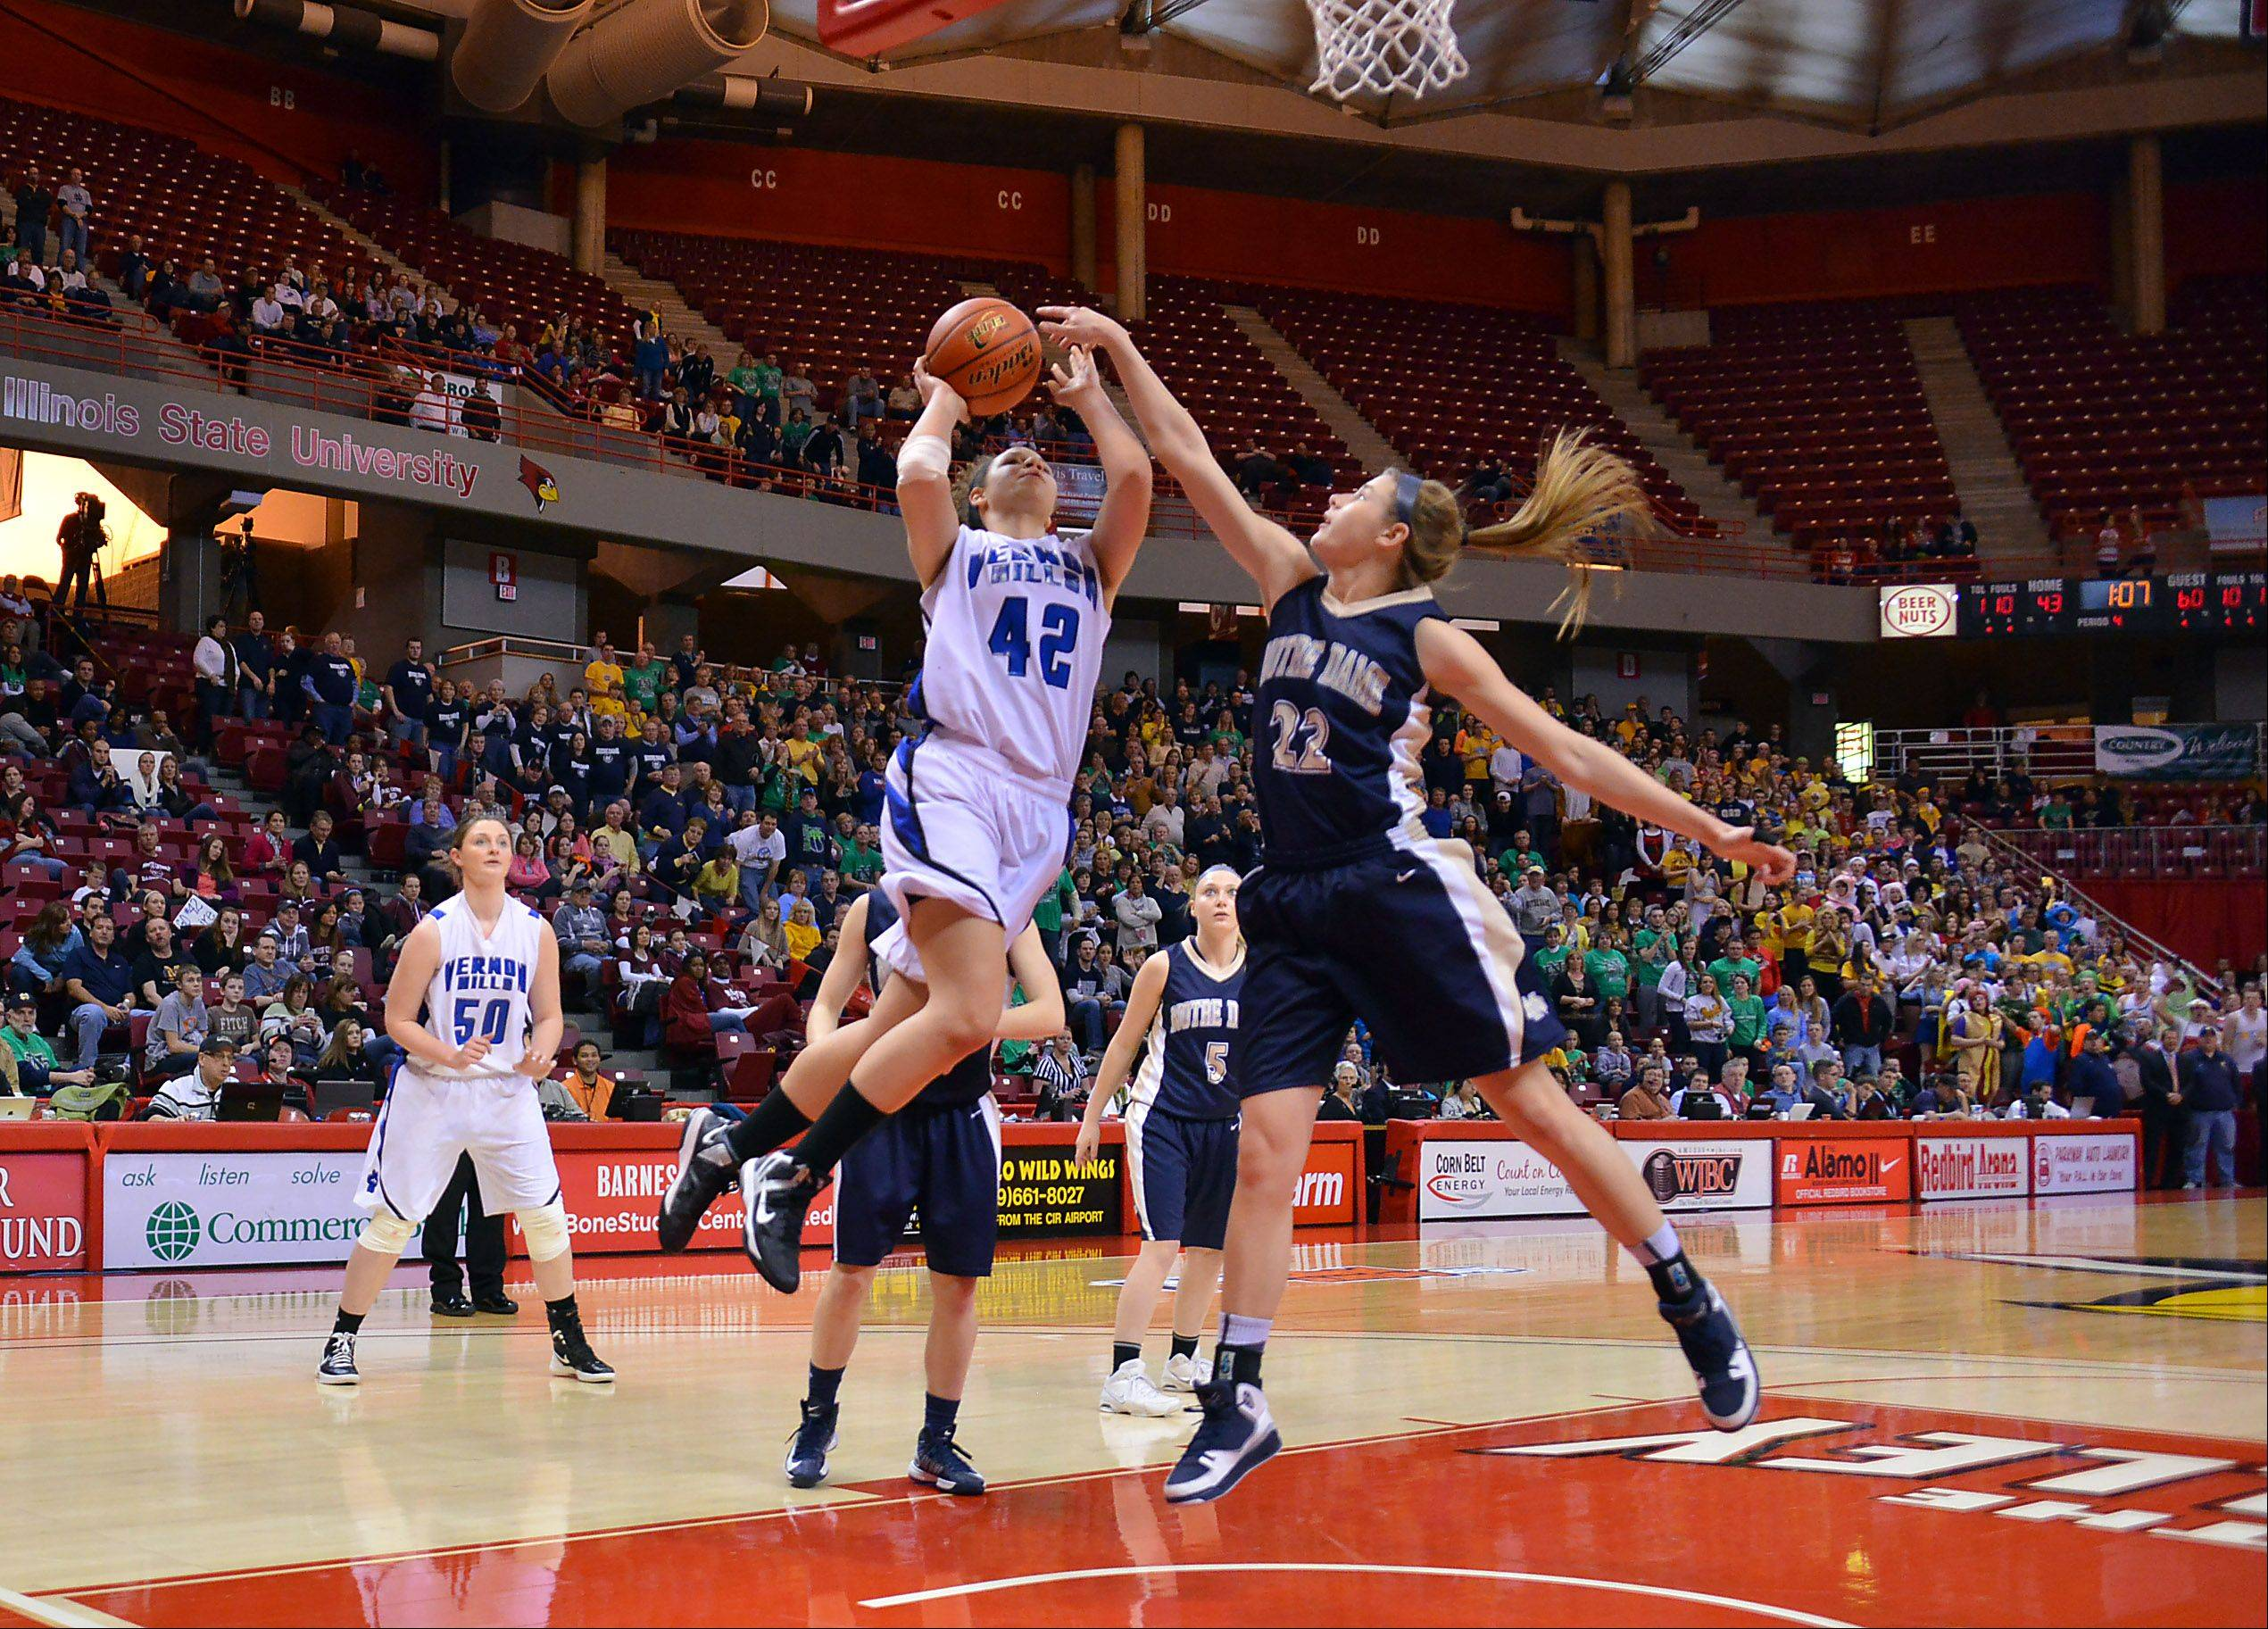 Vernon Hills Lauren Webb battles Quincy Notre Dame's Jordan Frericks under the basket late in the fourth quarter at the Class 3A state girls basketball championship in Normal on Saturday.